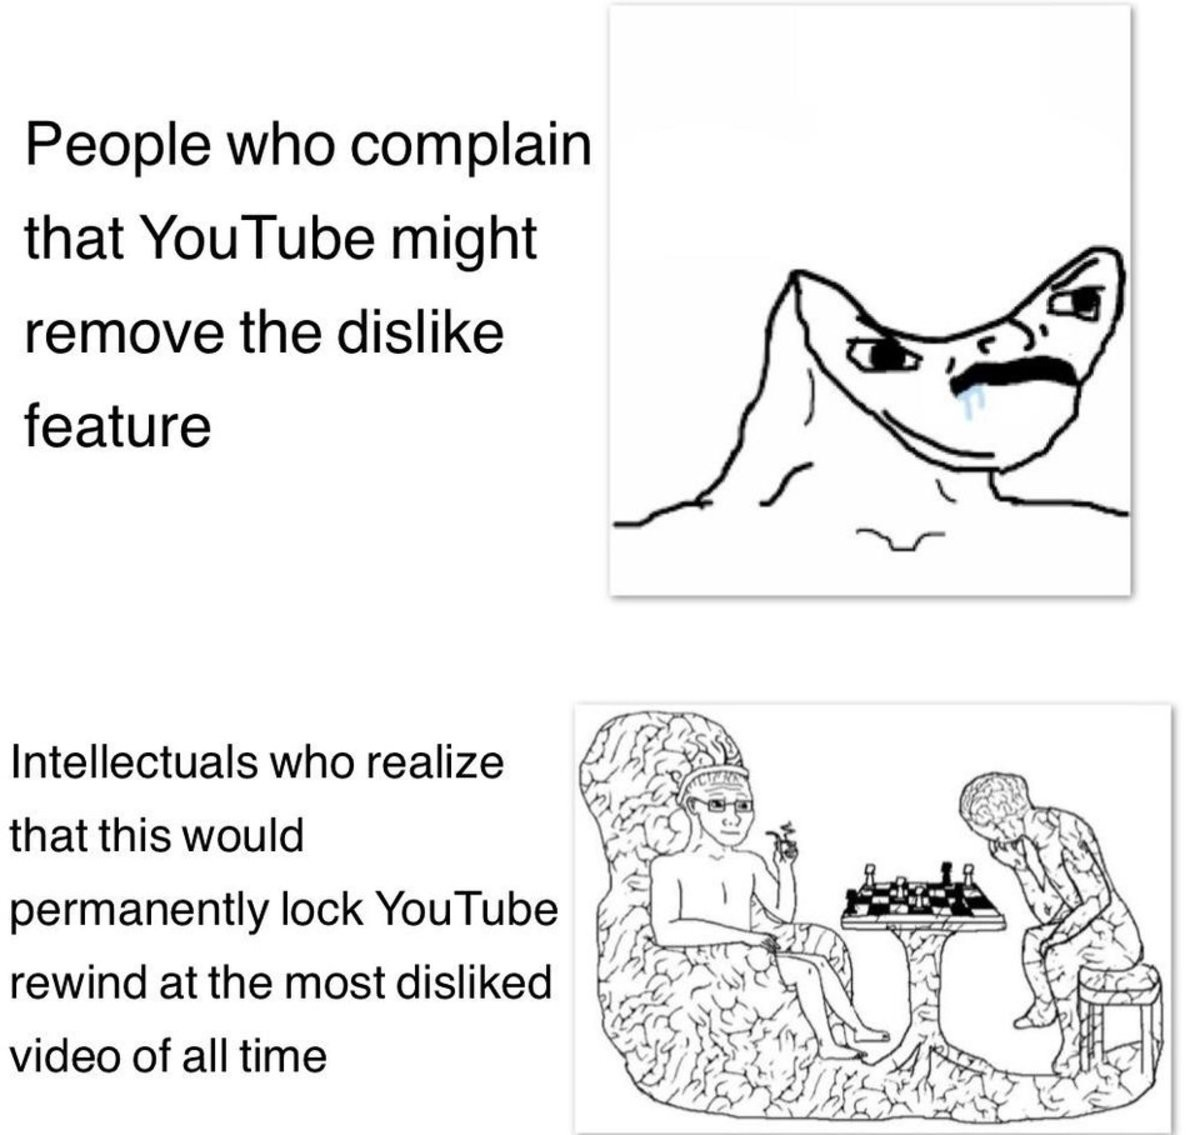 2000 IQ moves here. .. unless the remove dislikes, brainlet